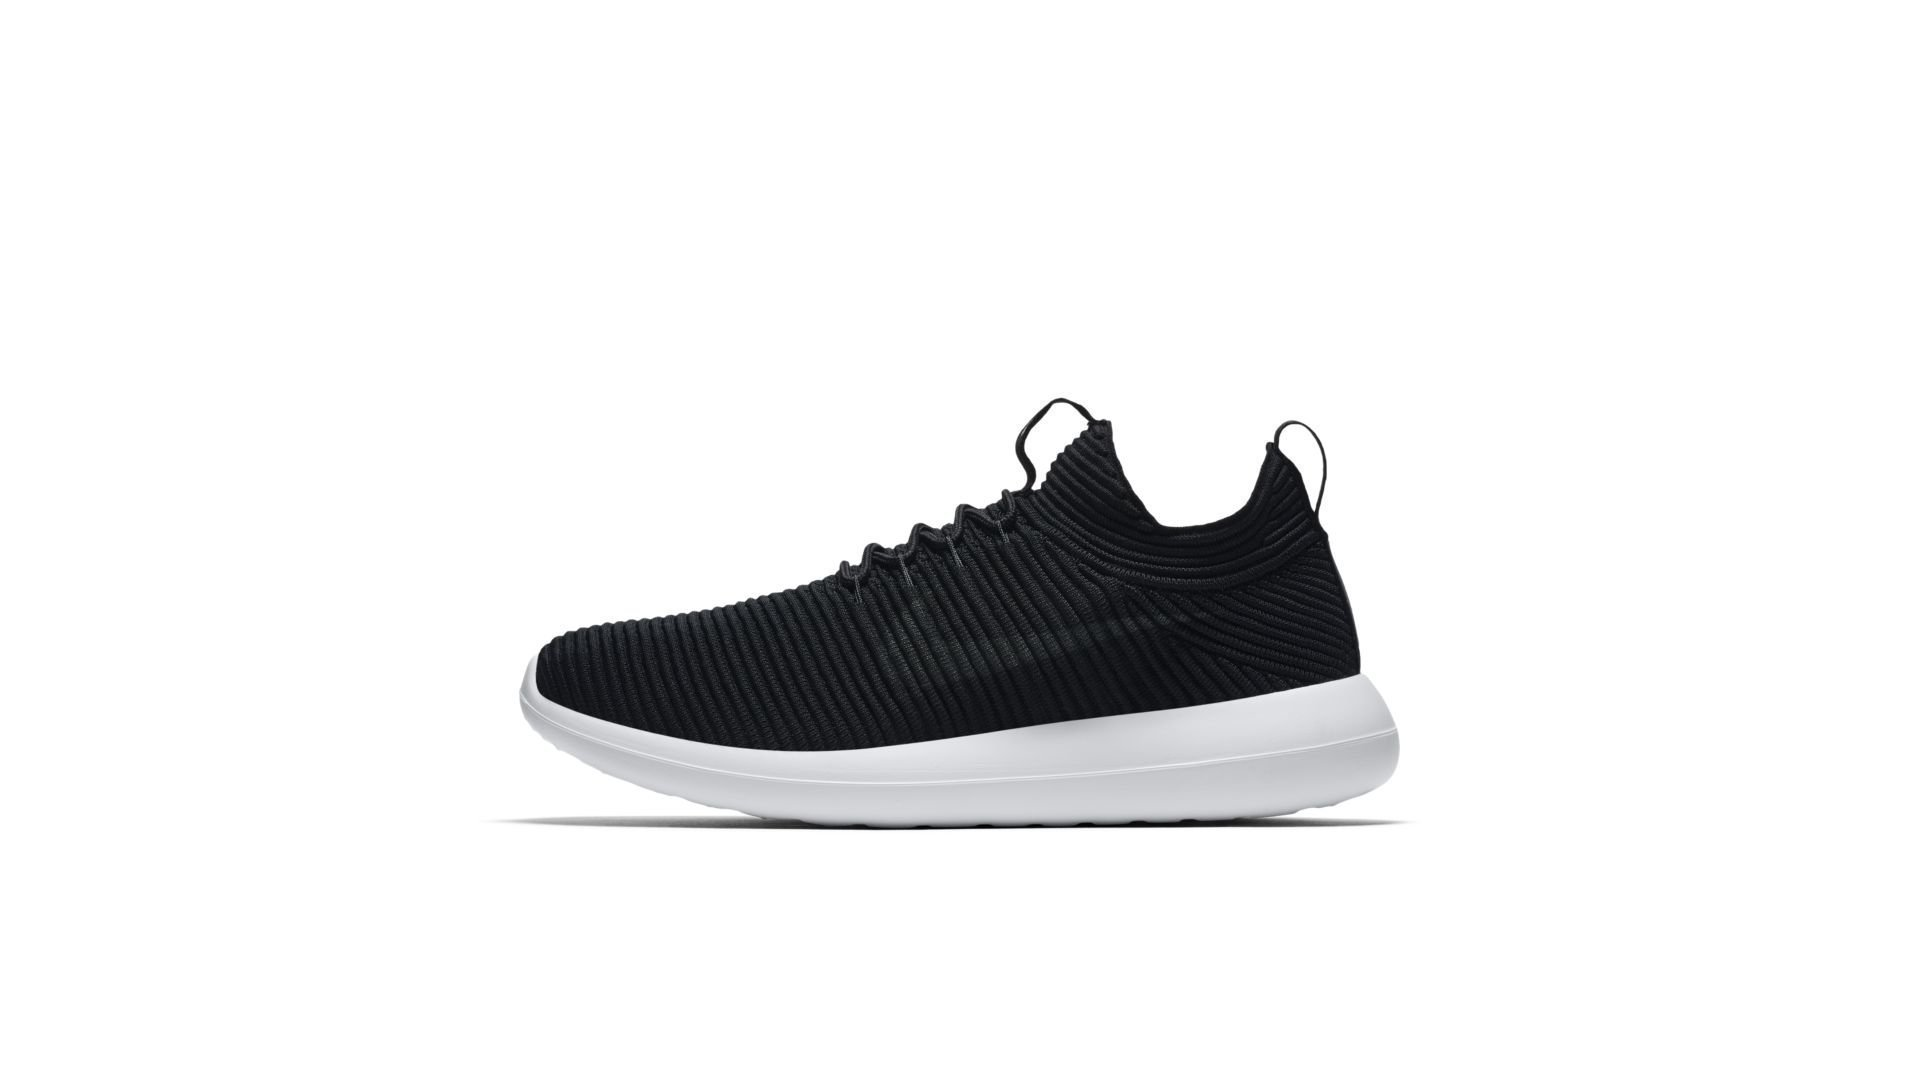 Nike Roshe Two Flyknit Black Anthracite (918263-002)